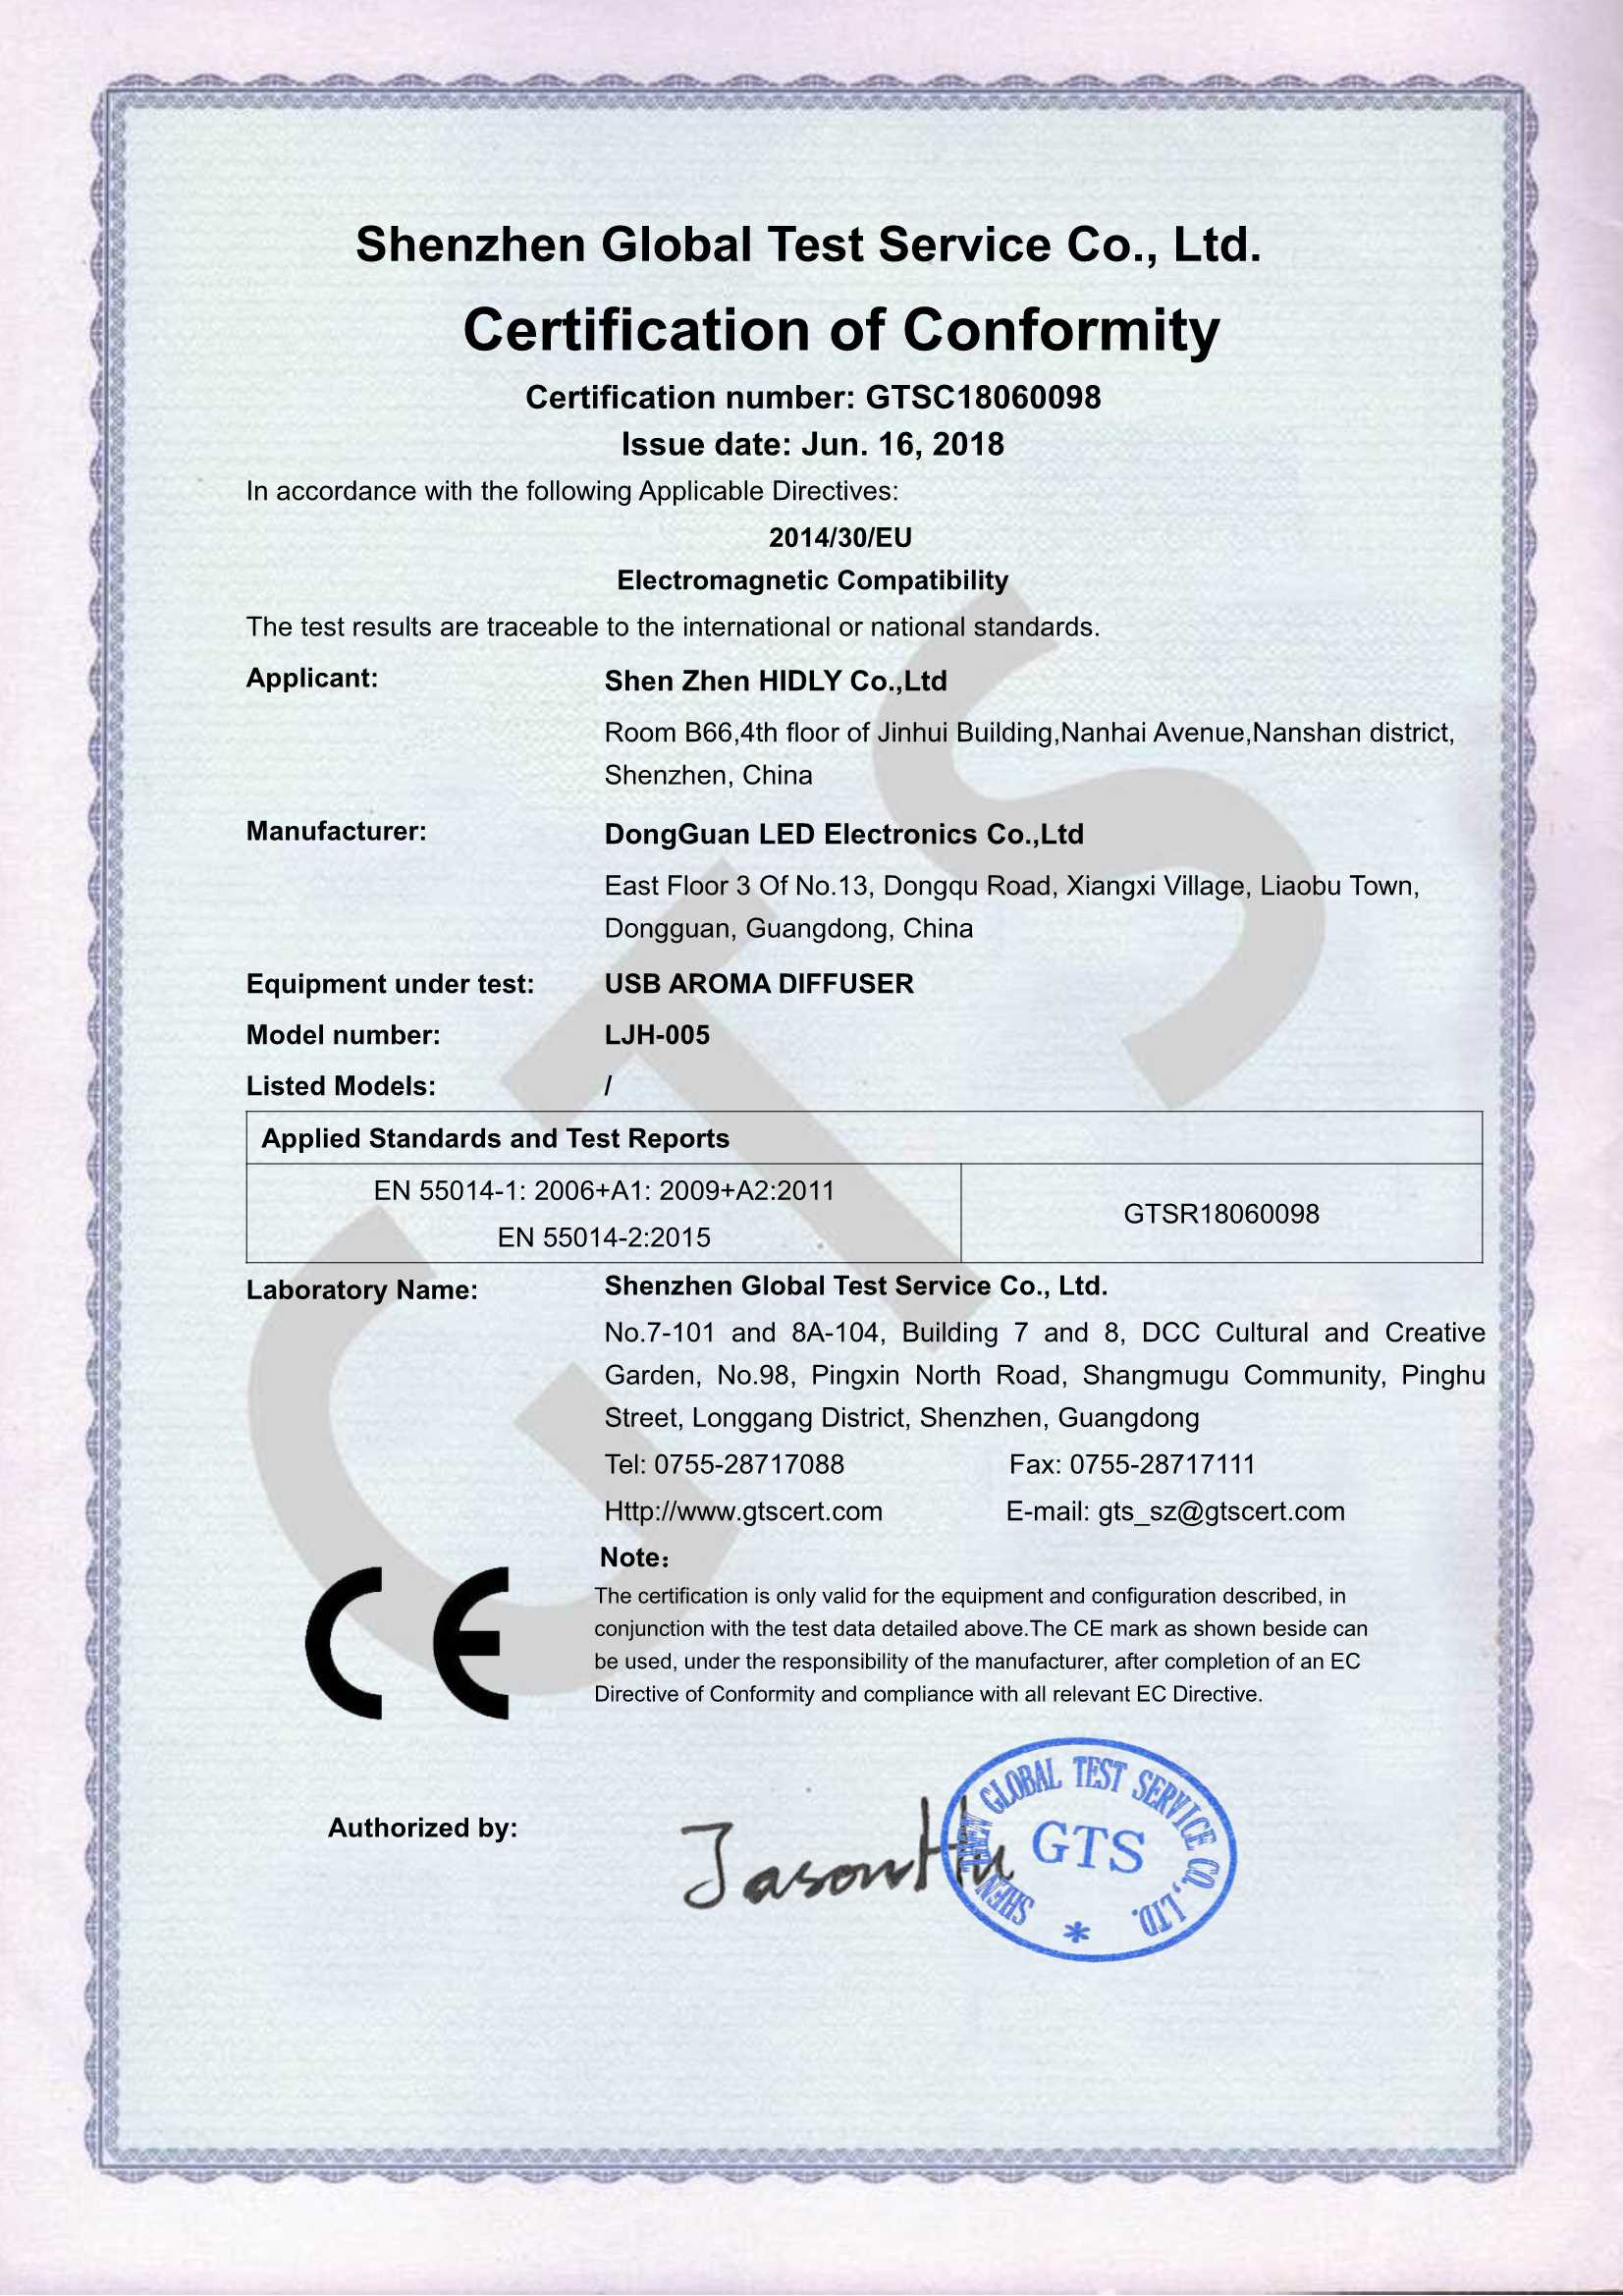 Our aroma humidifier(LJH005)have acquired CE-EMC Certifications